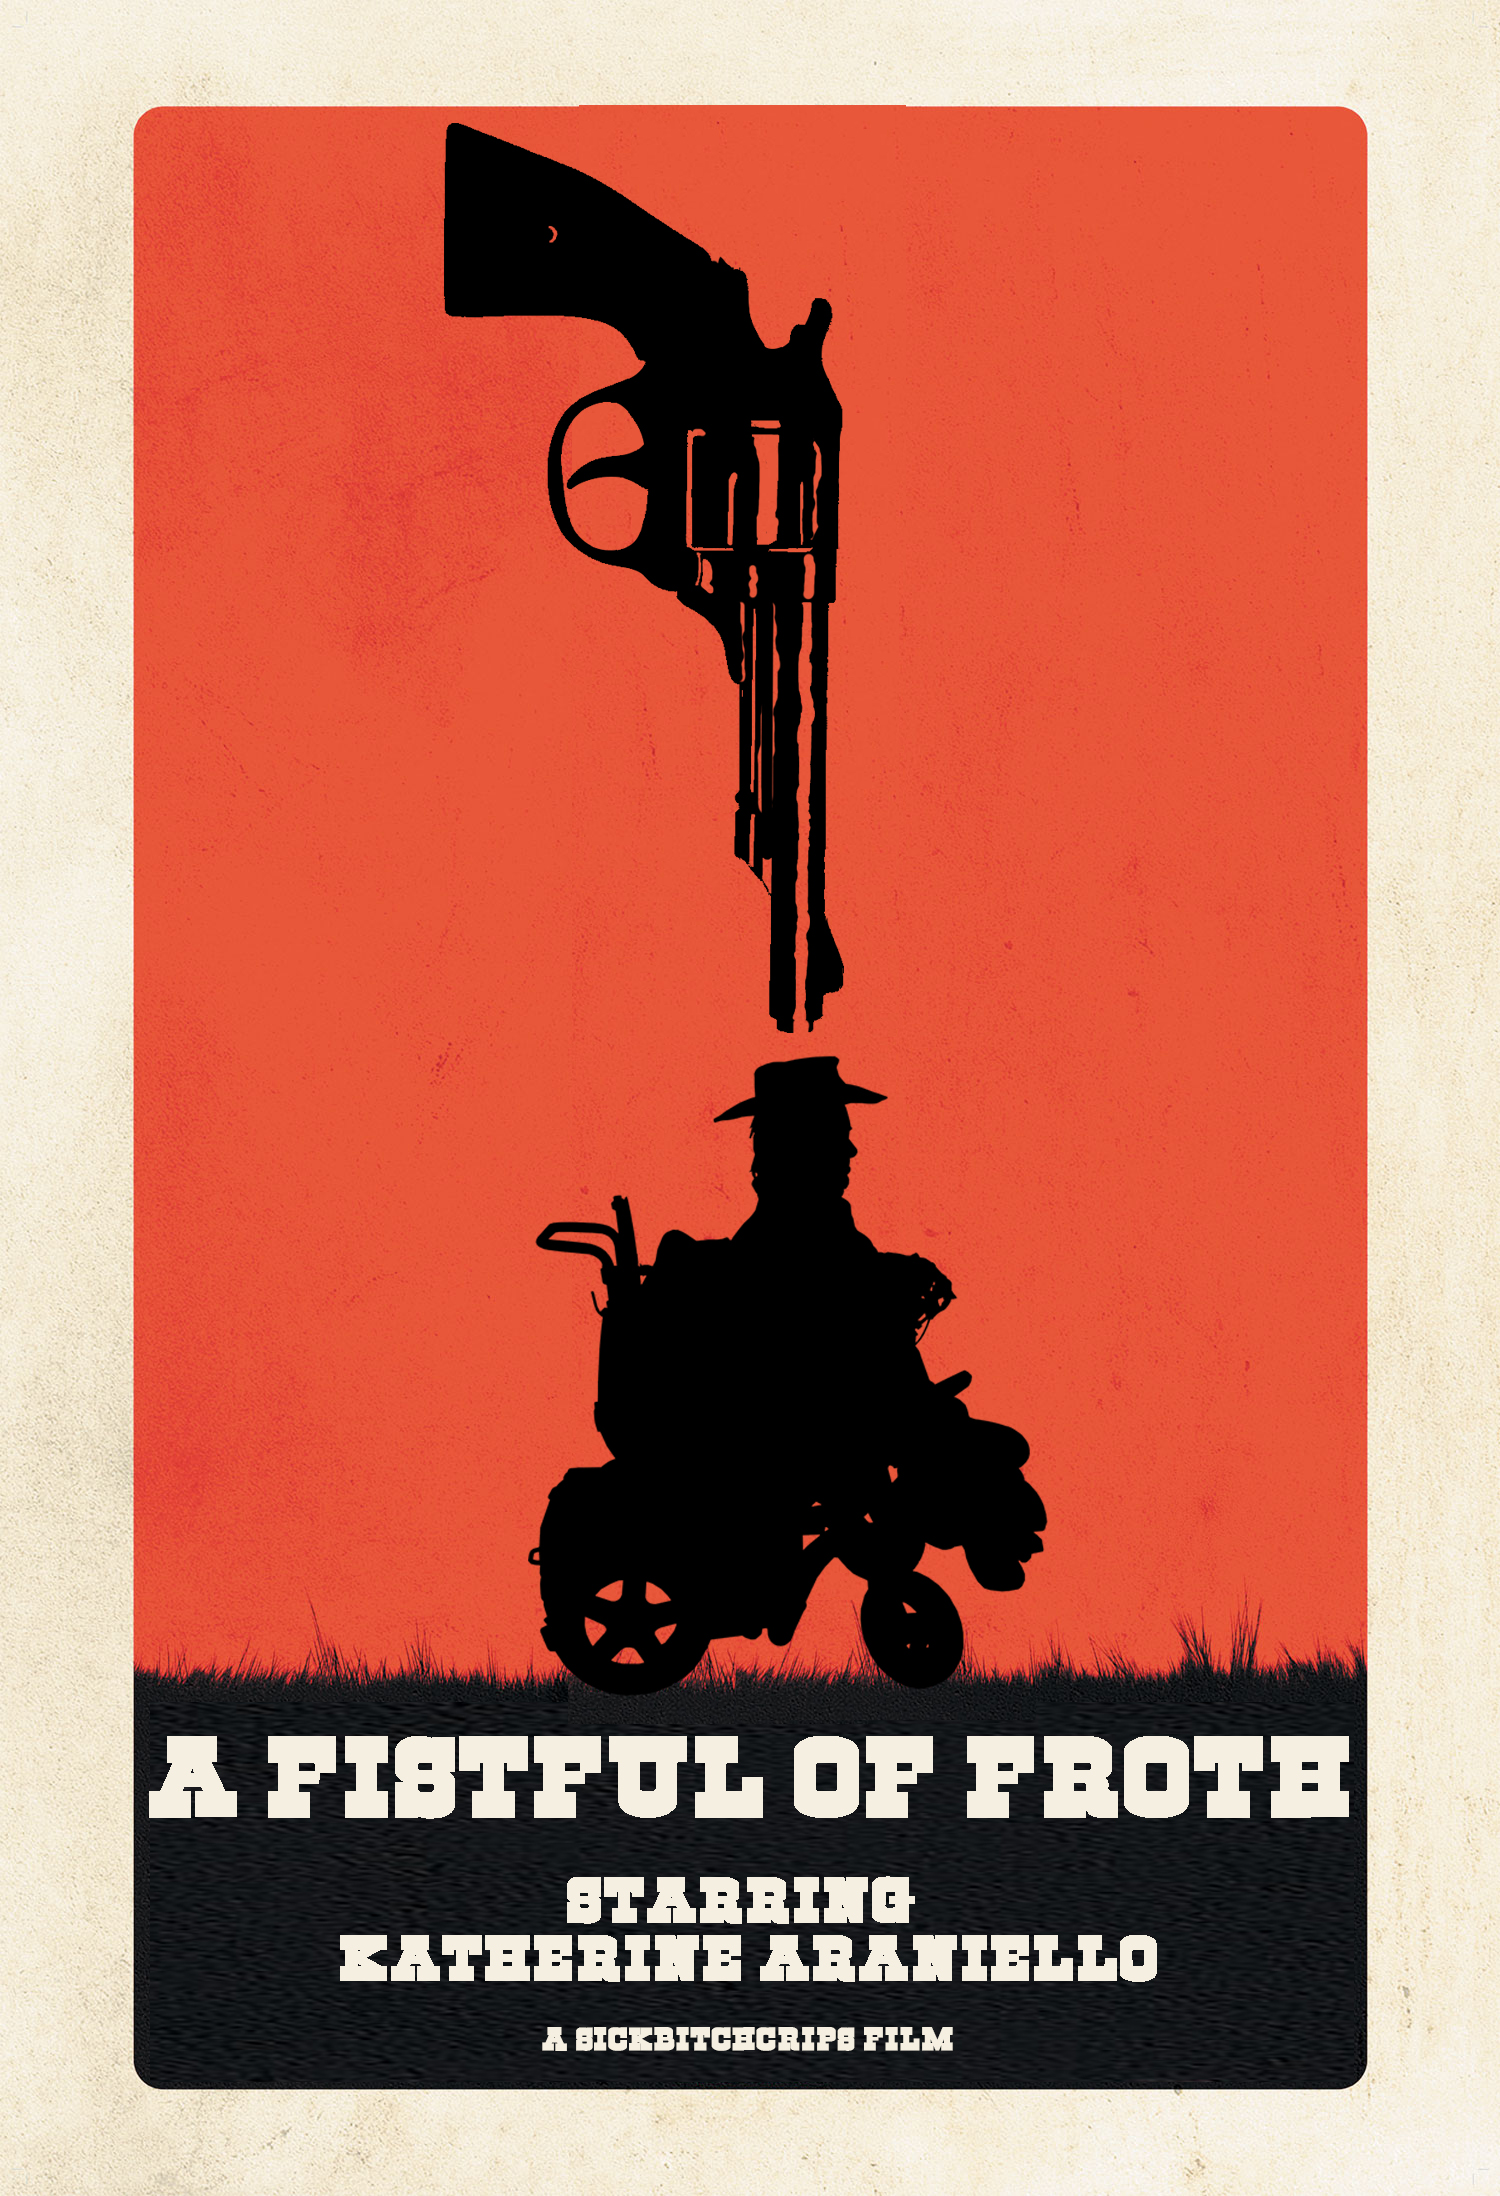 a western poster-style image